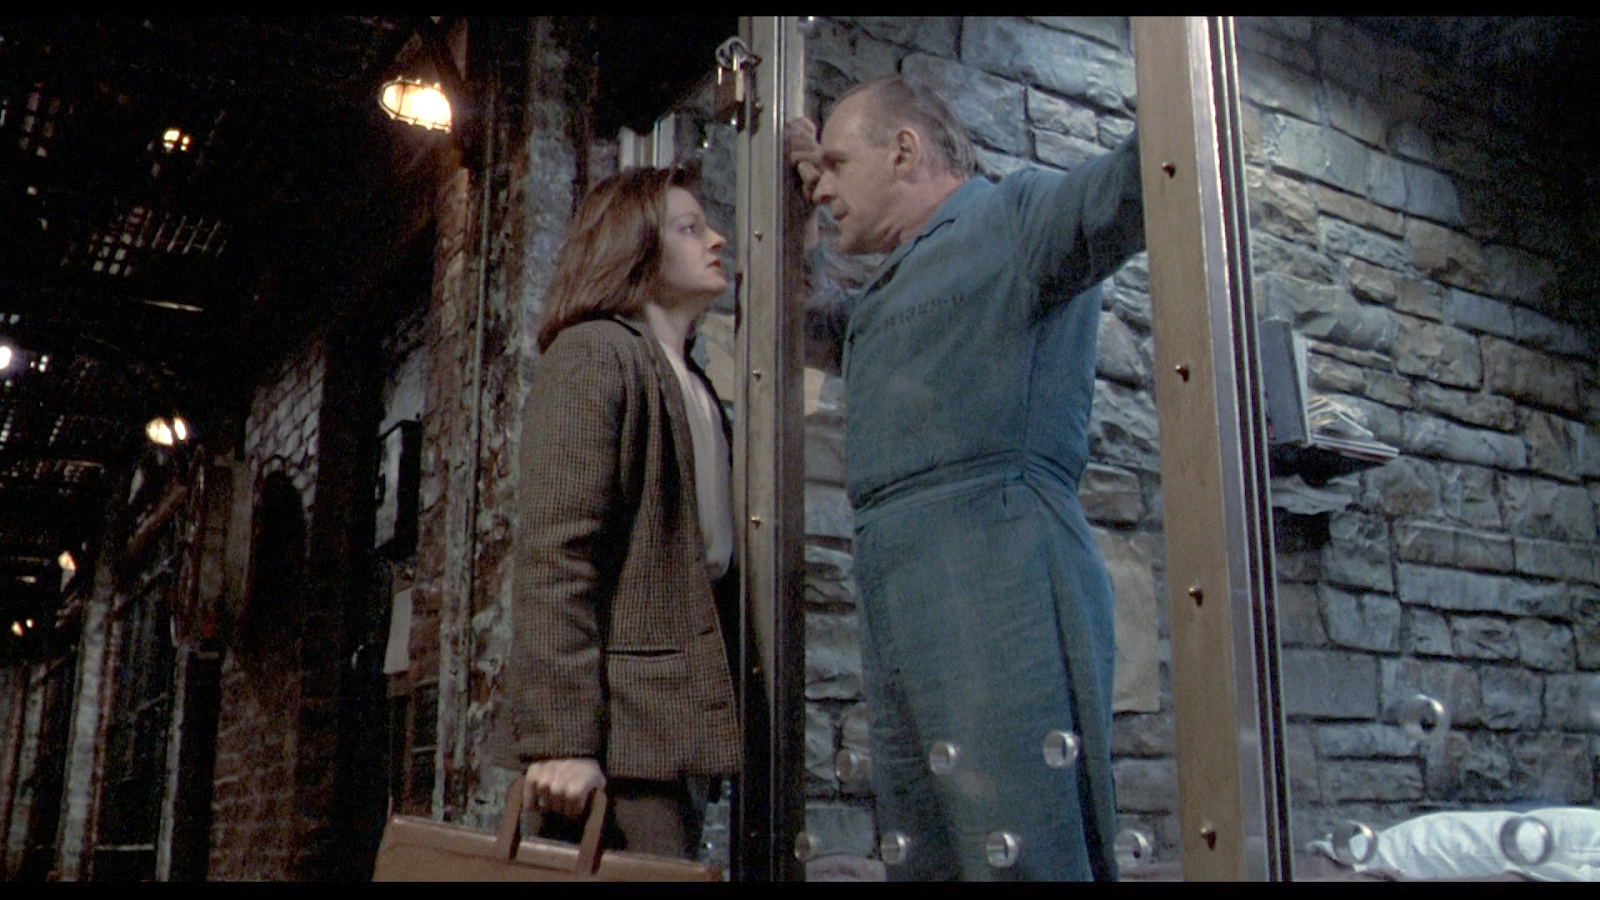 Monsters, Inc:Jodie Foster (Clarice Starling) and Anthony Hopkins (Hannibal Lecter) in Netflix's  The Silence of the Lambs